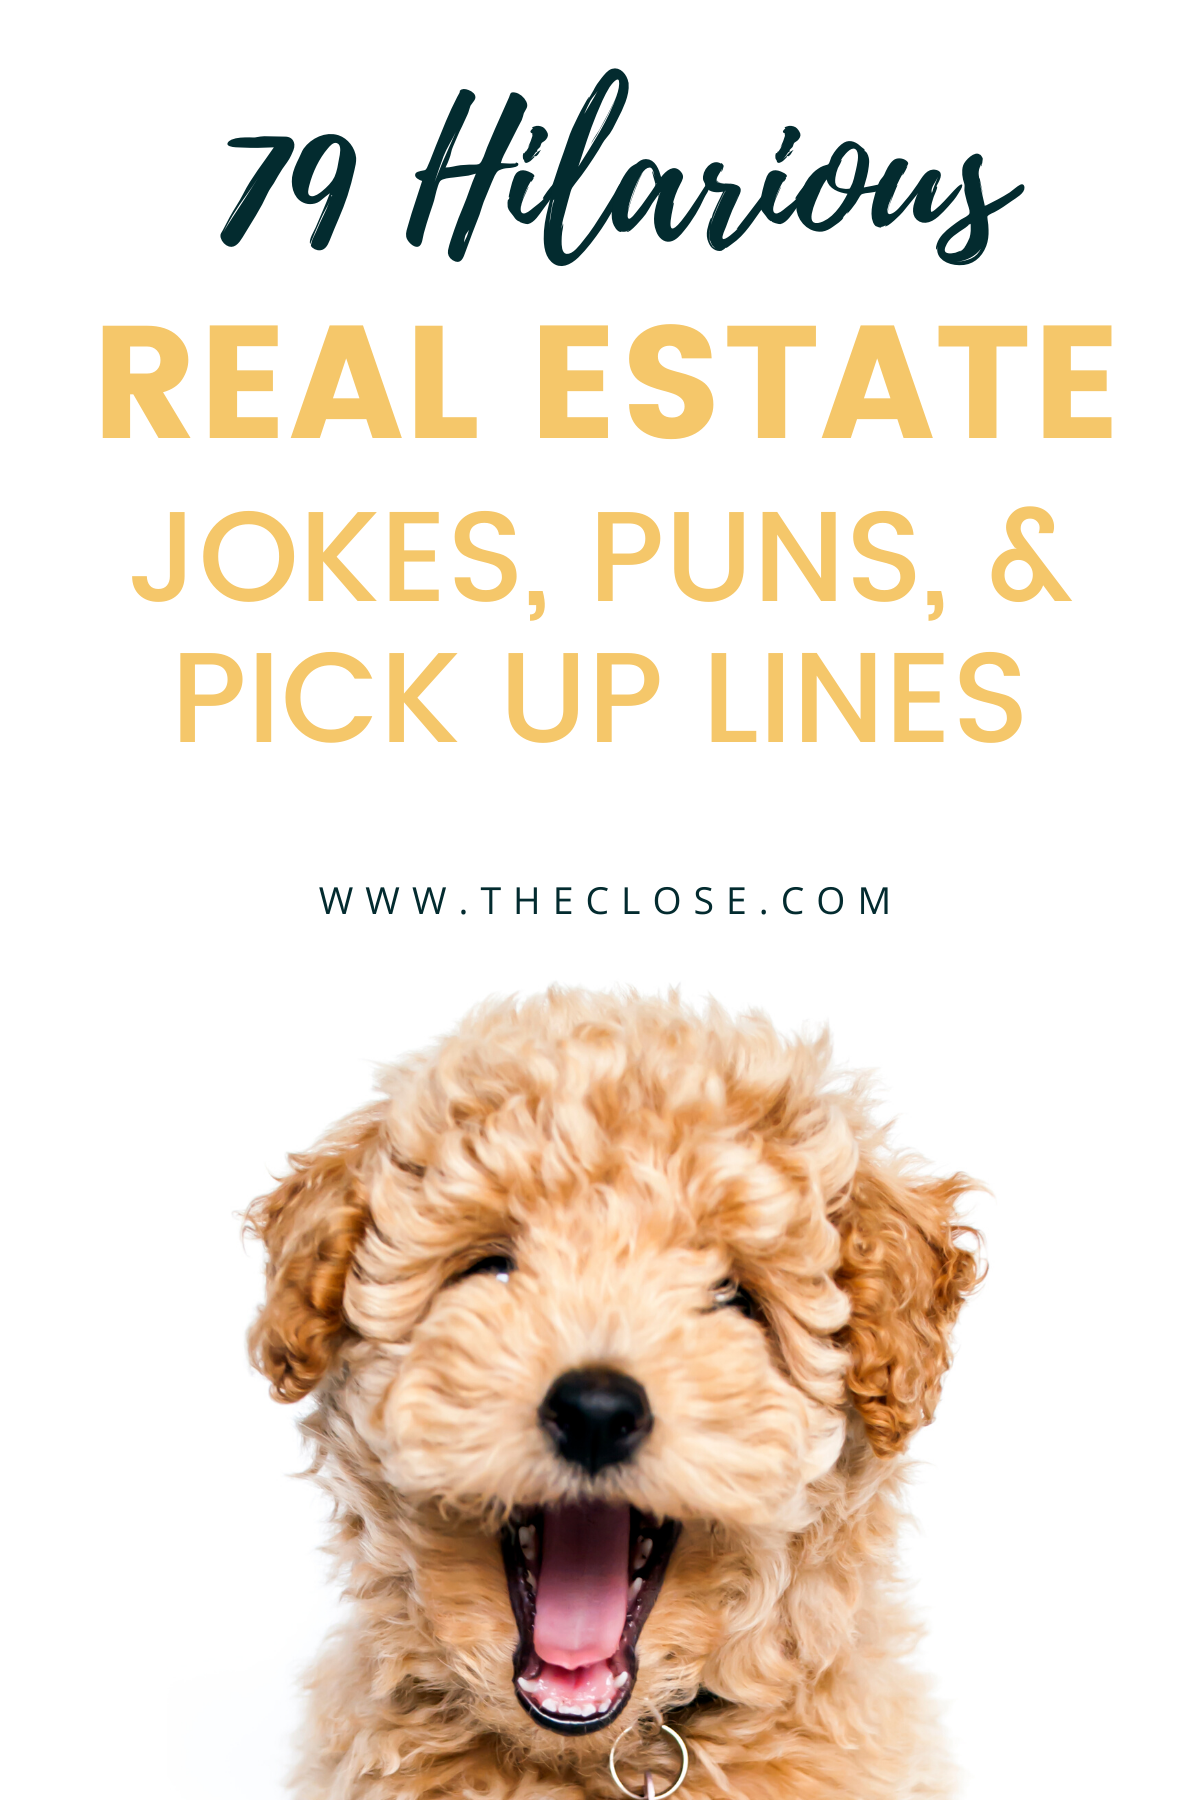 79 Hilarious Real Estate Jokes, Puns, & Pick Up Li